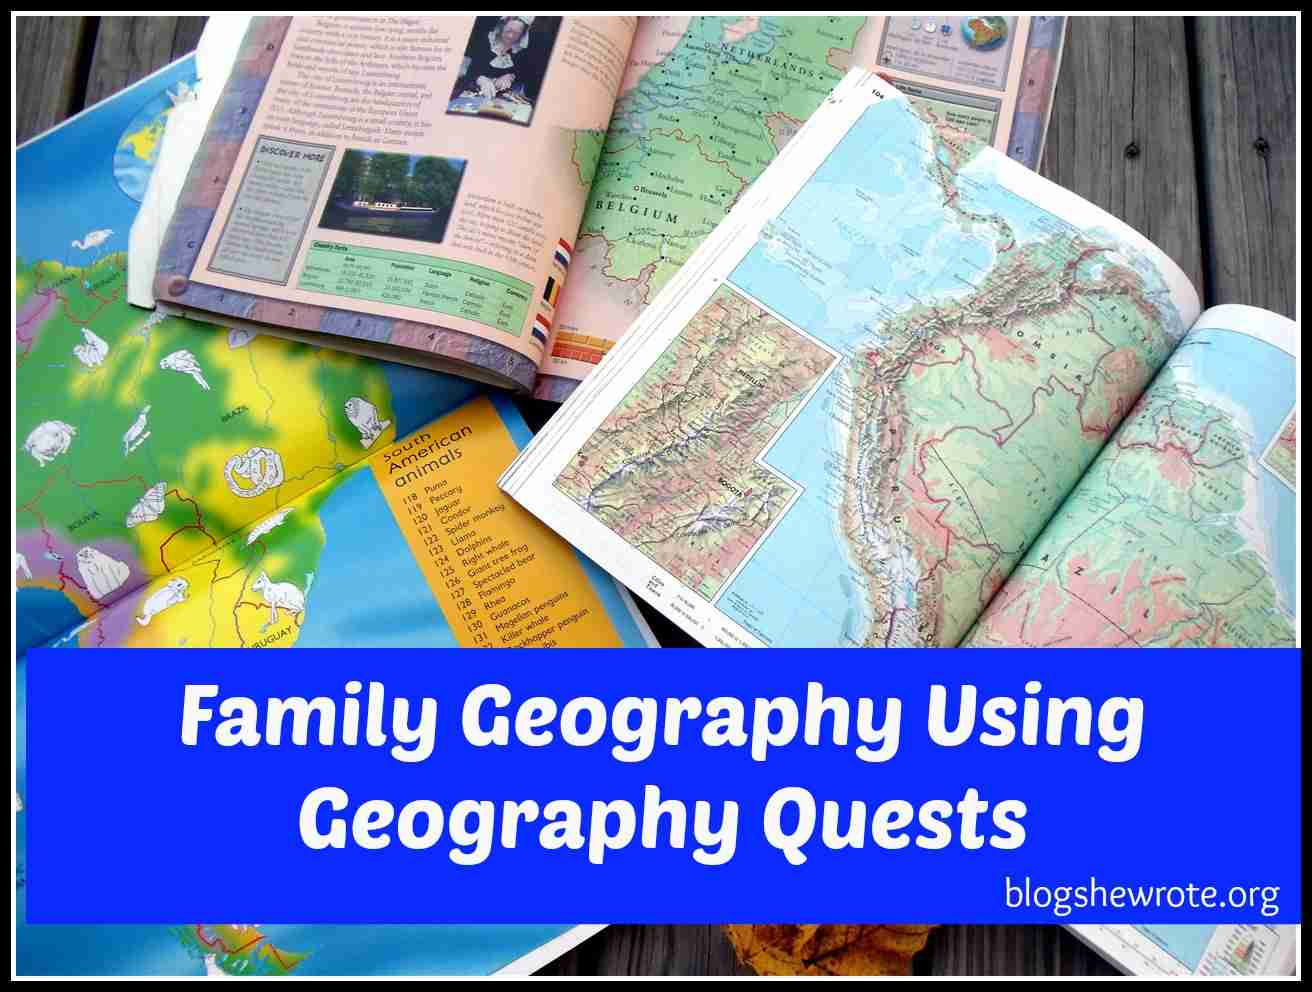 Blog, She Wrote: Family Geography Using Geography Quests